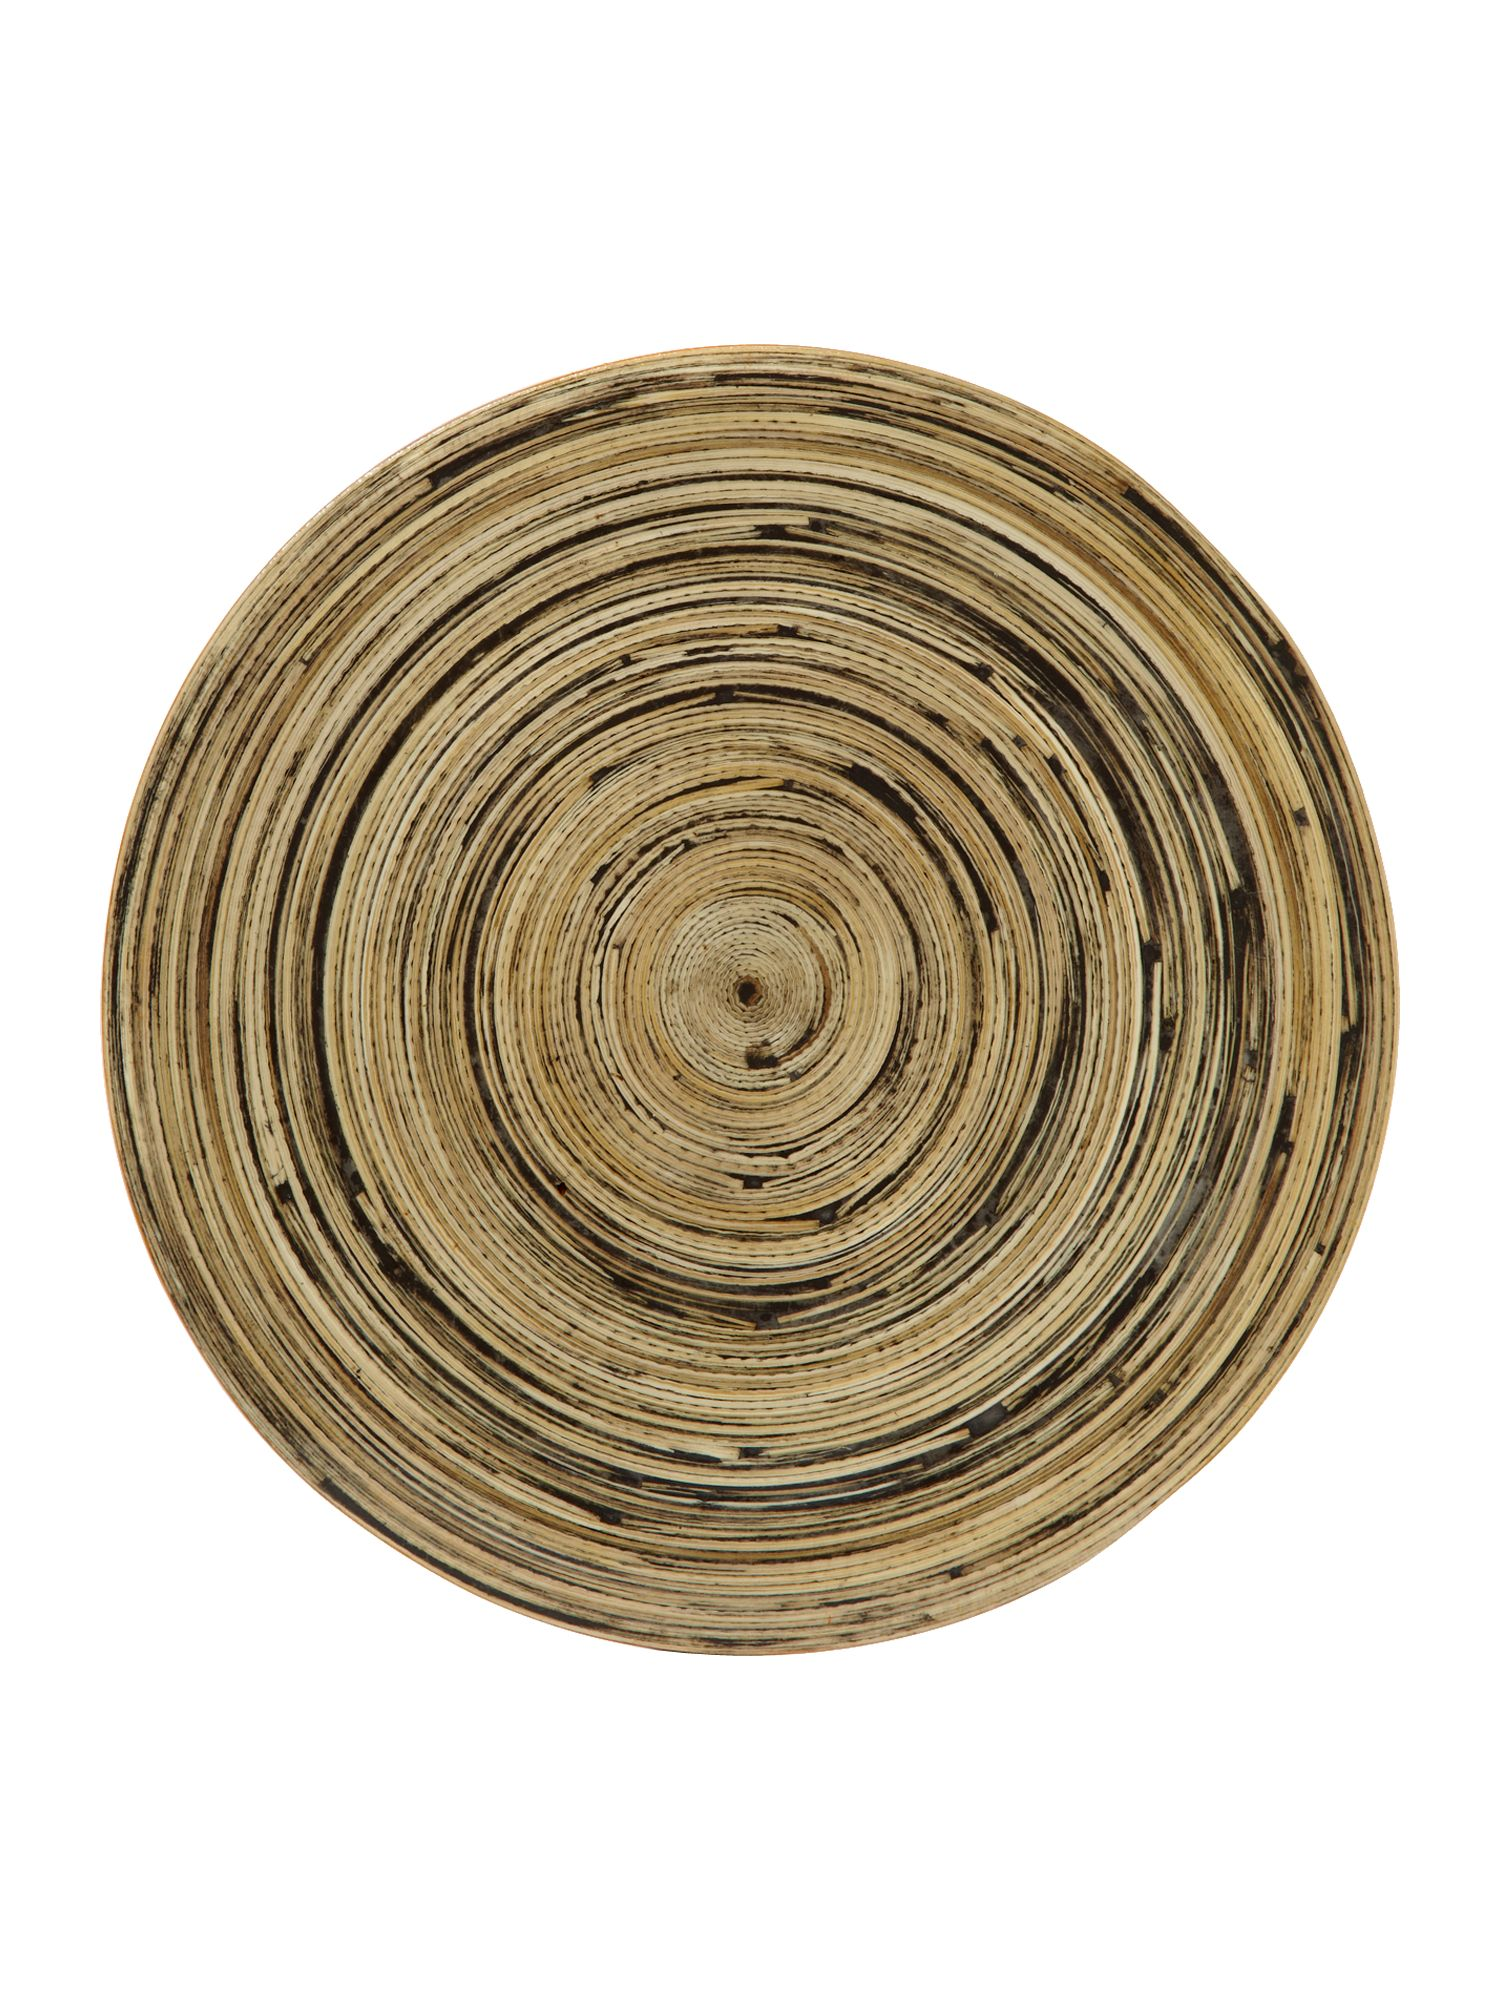 Inspire Spun bamboo placemats set of 2